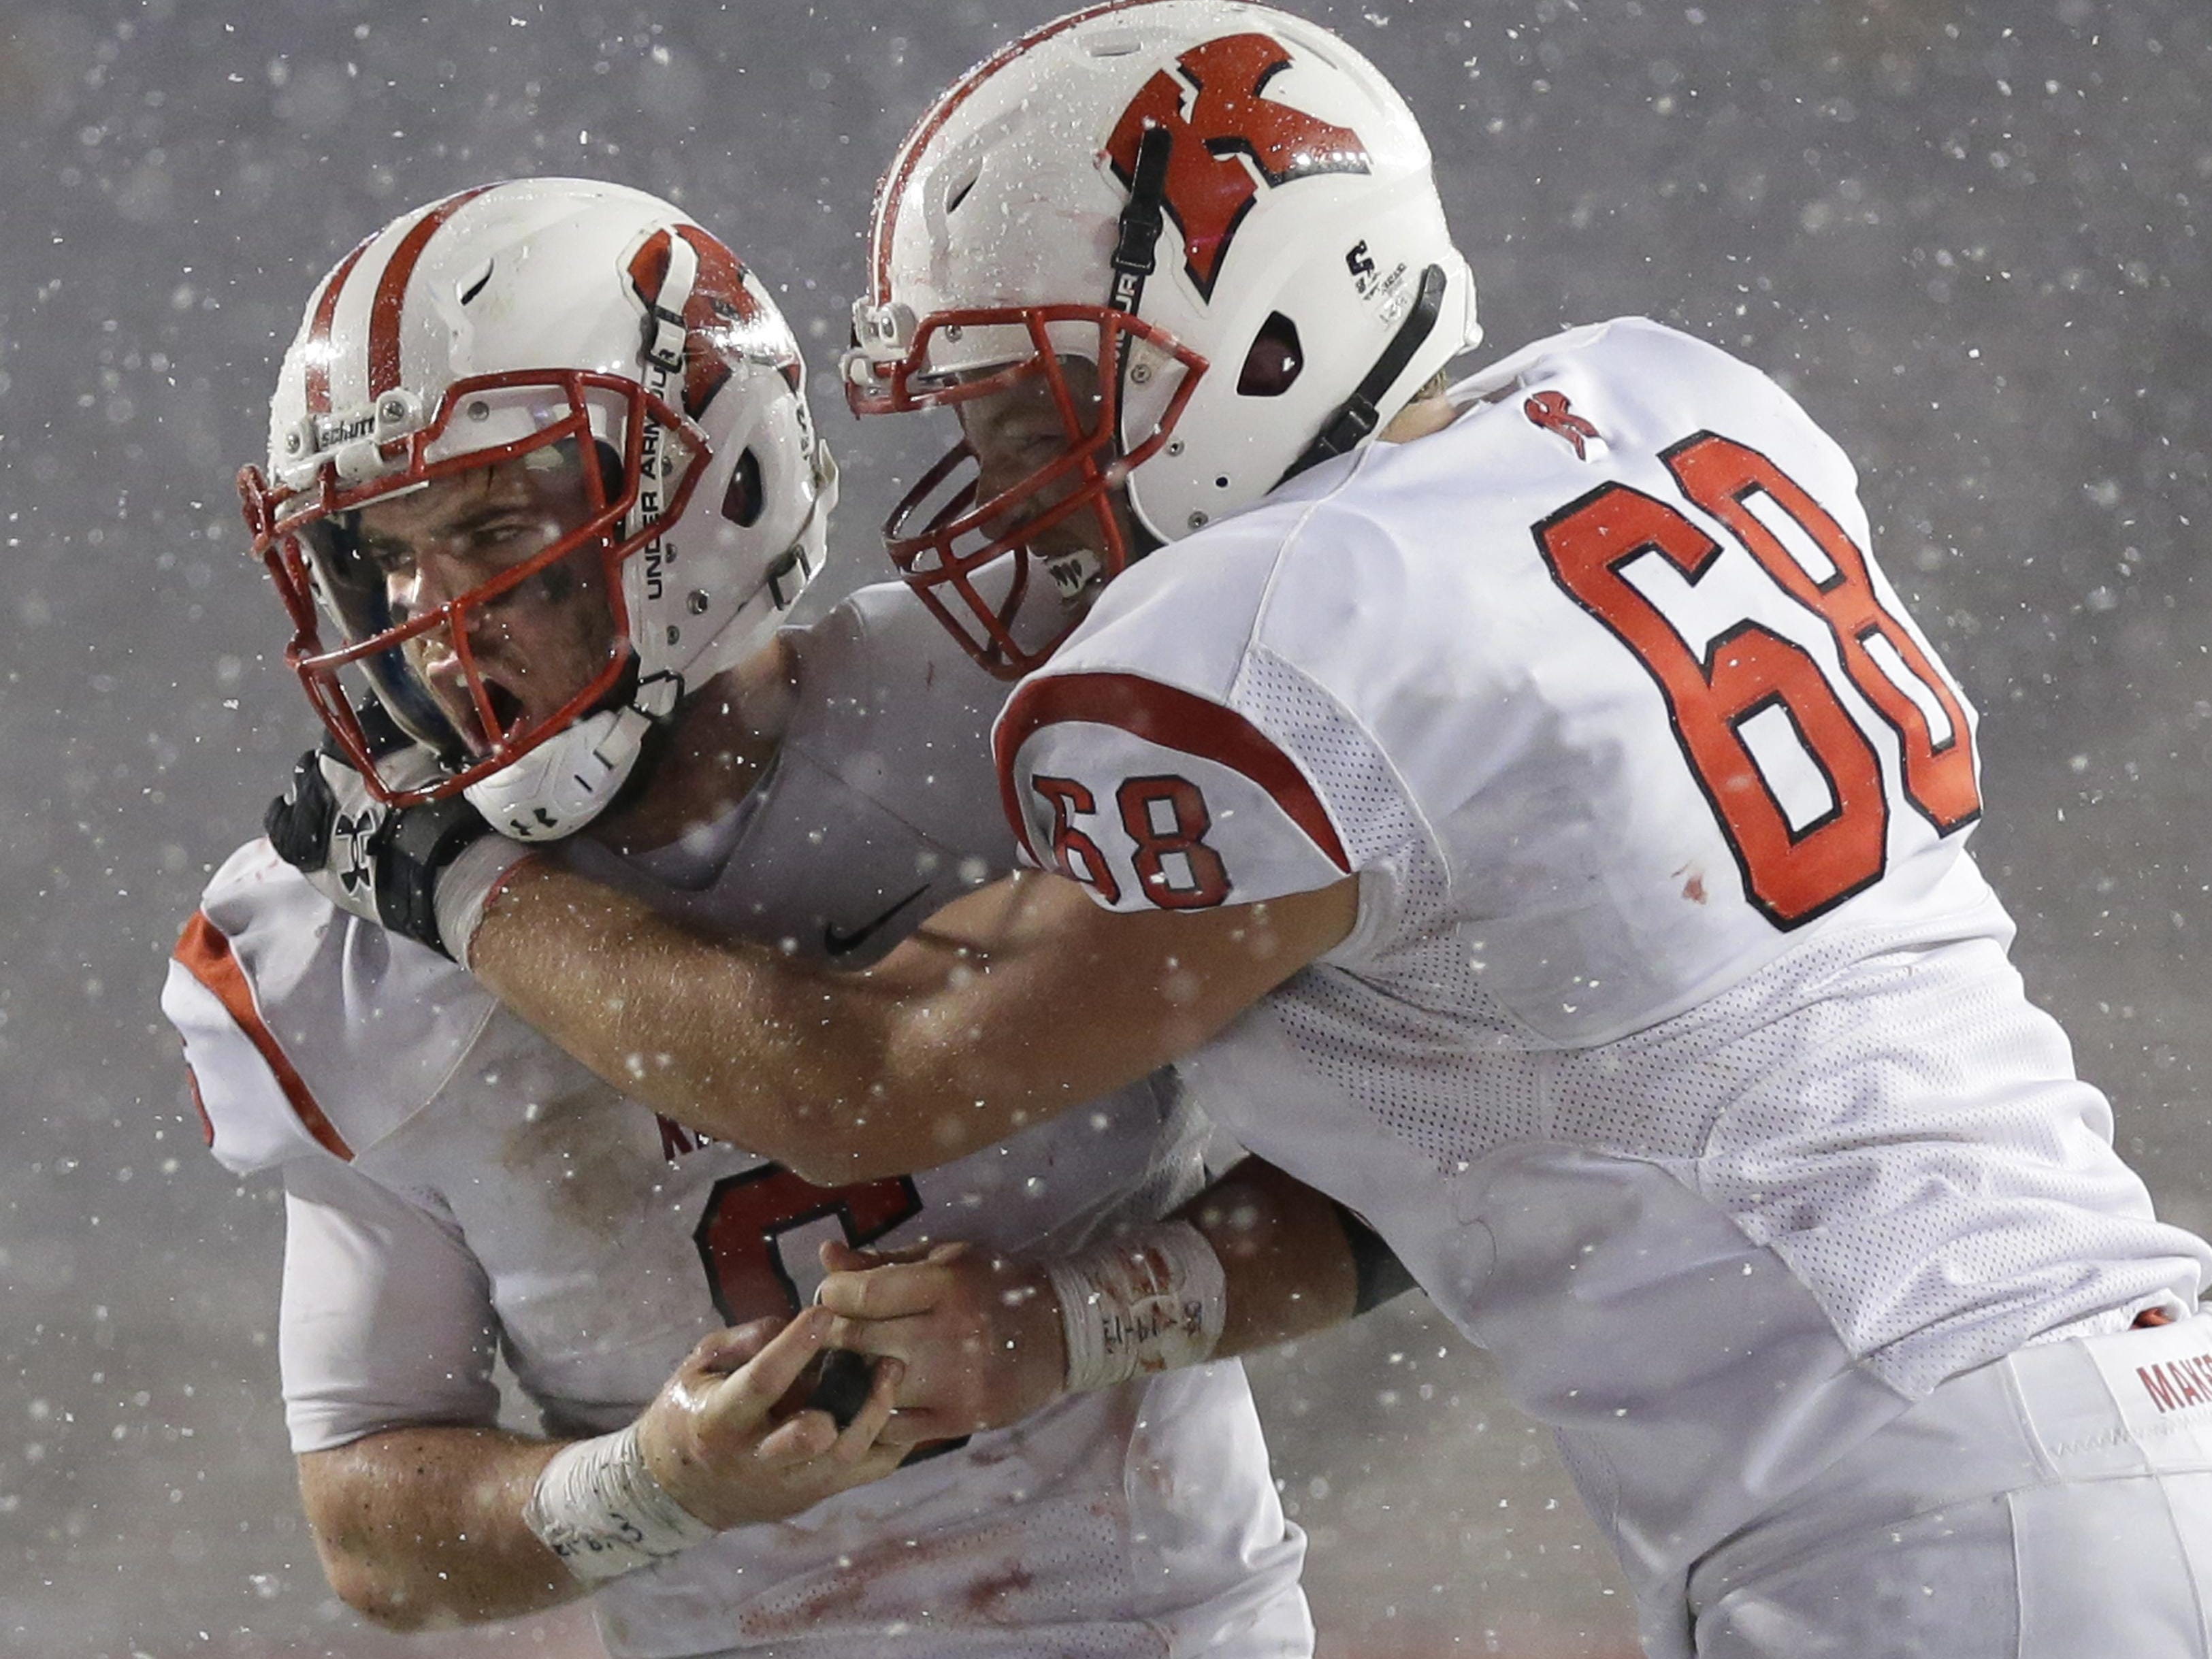 Kimberly's Blair Mulholland (left) celebrates his game-winning touchdown with Mickey Steger in the WIAA Division 1 state football championship game Friday at Camp Randall Stadium in Madison.